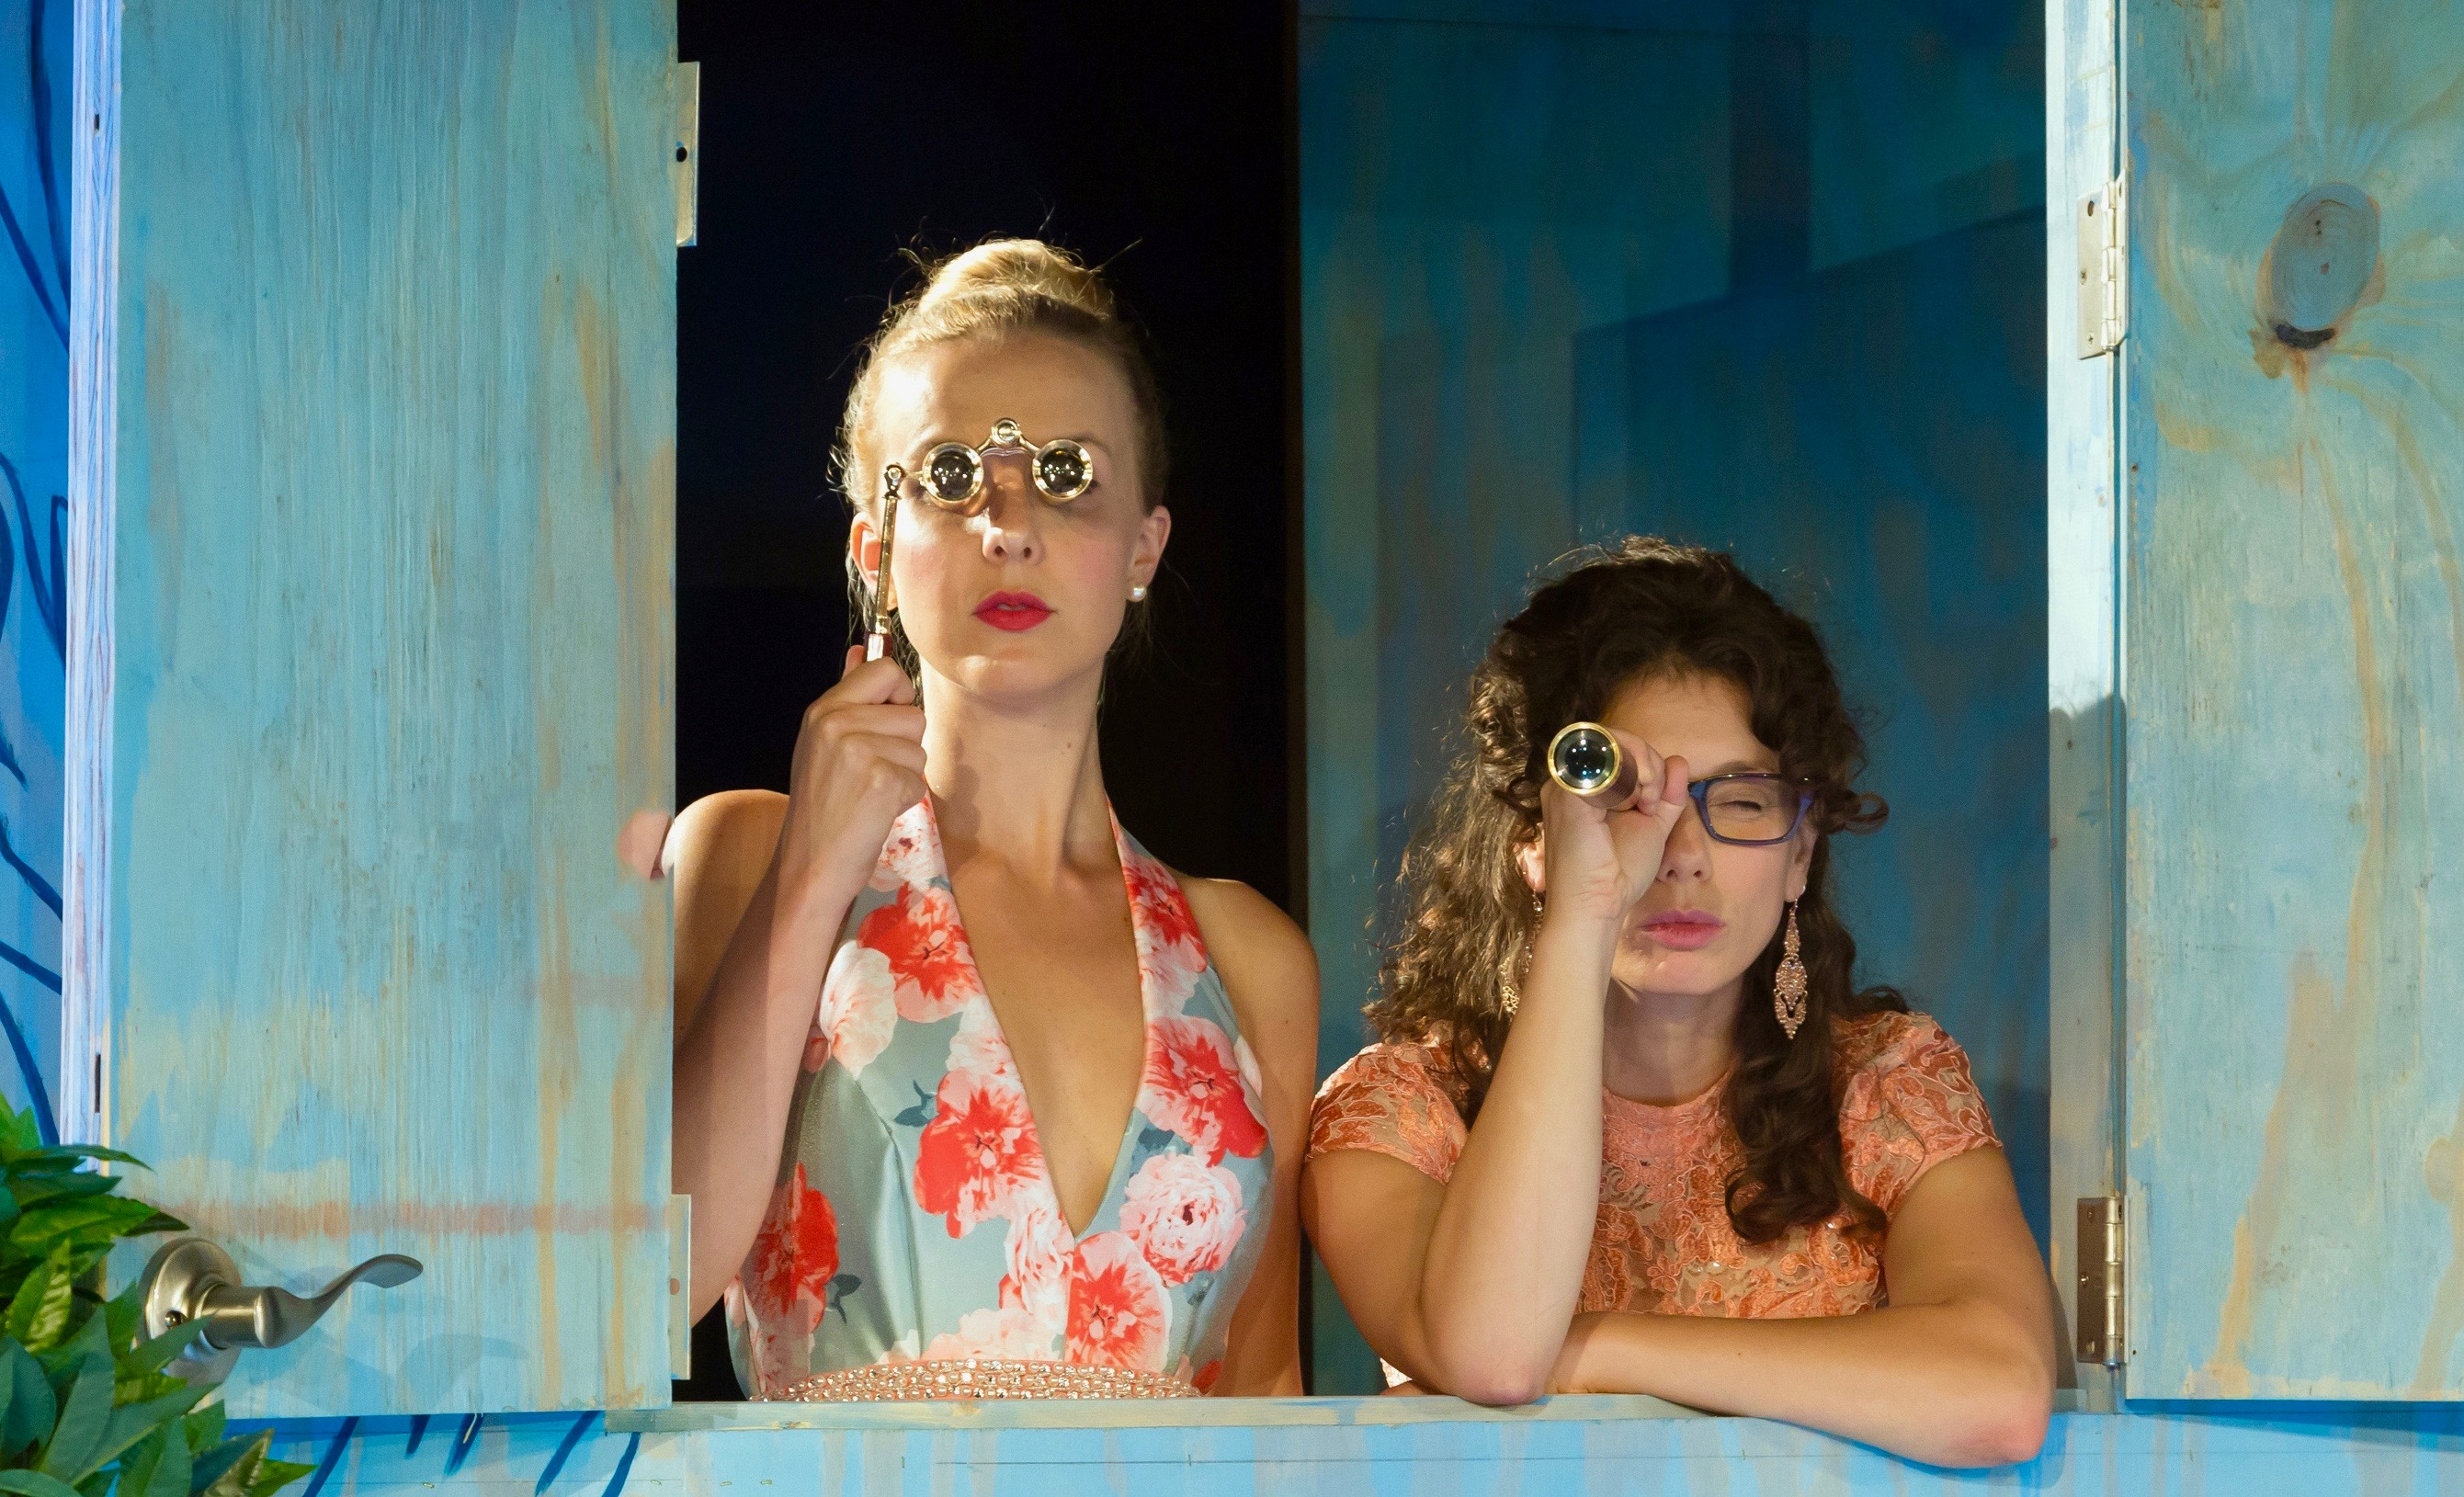 Sharp-eyed Clarice (Erika Strasburg, L) and Lucrece (Sarah Silk) use spyware to monitor the dubious doings of Dorante.